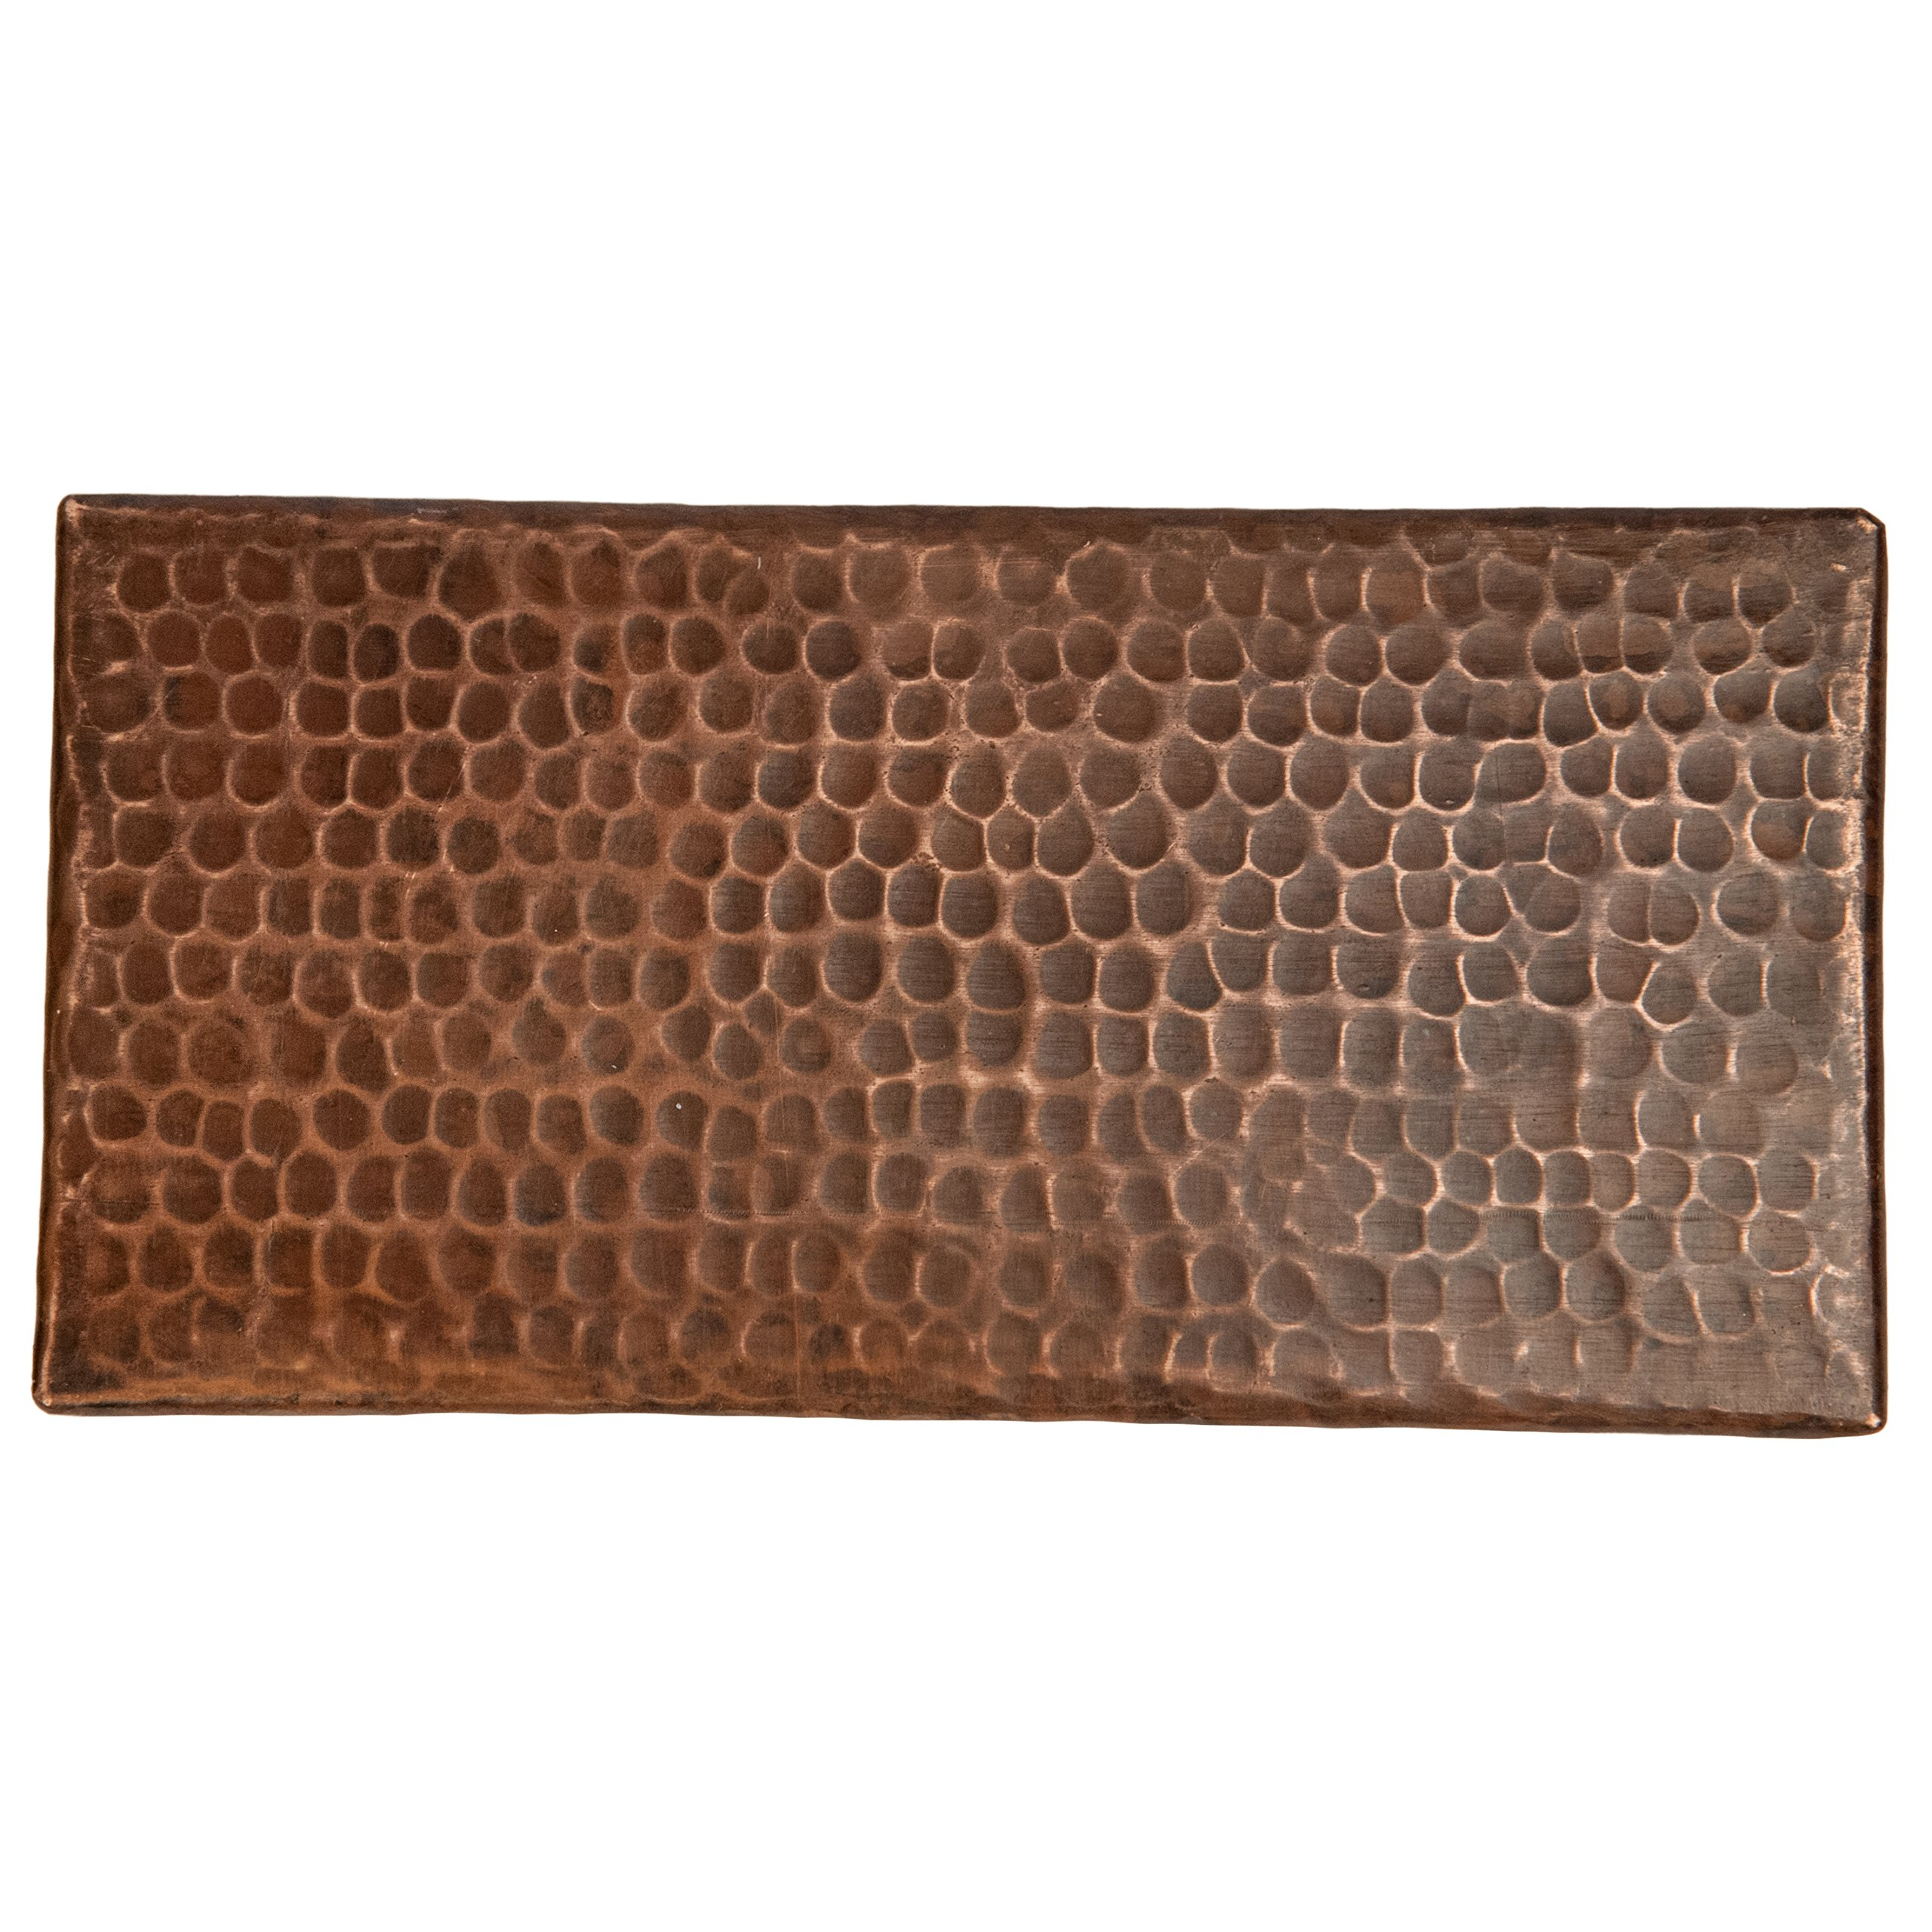 Premier Copper Products T48DBH_PKG4 4-Inch by 8-Inch Hammered Copper Tile - Quantity 4, Oil Rubbed Bronze